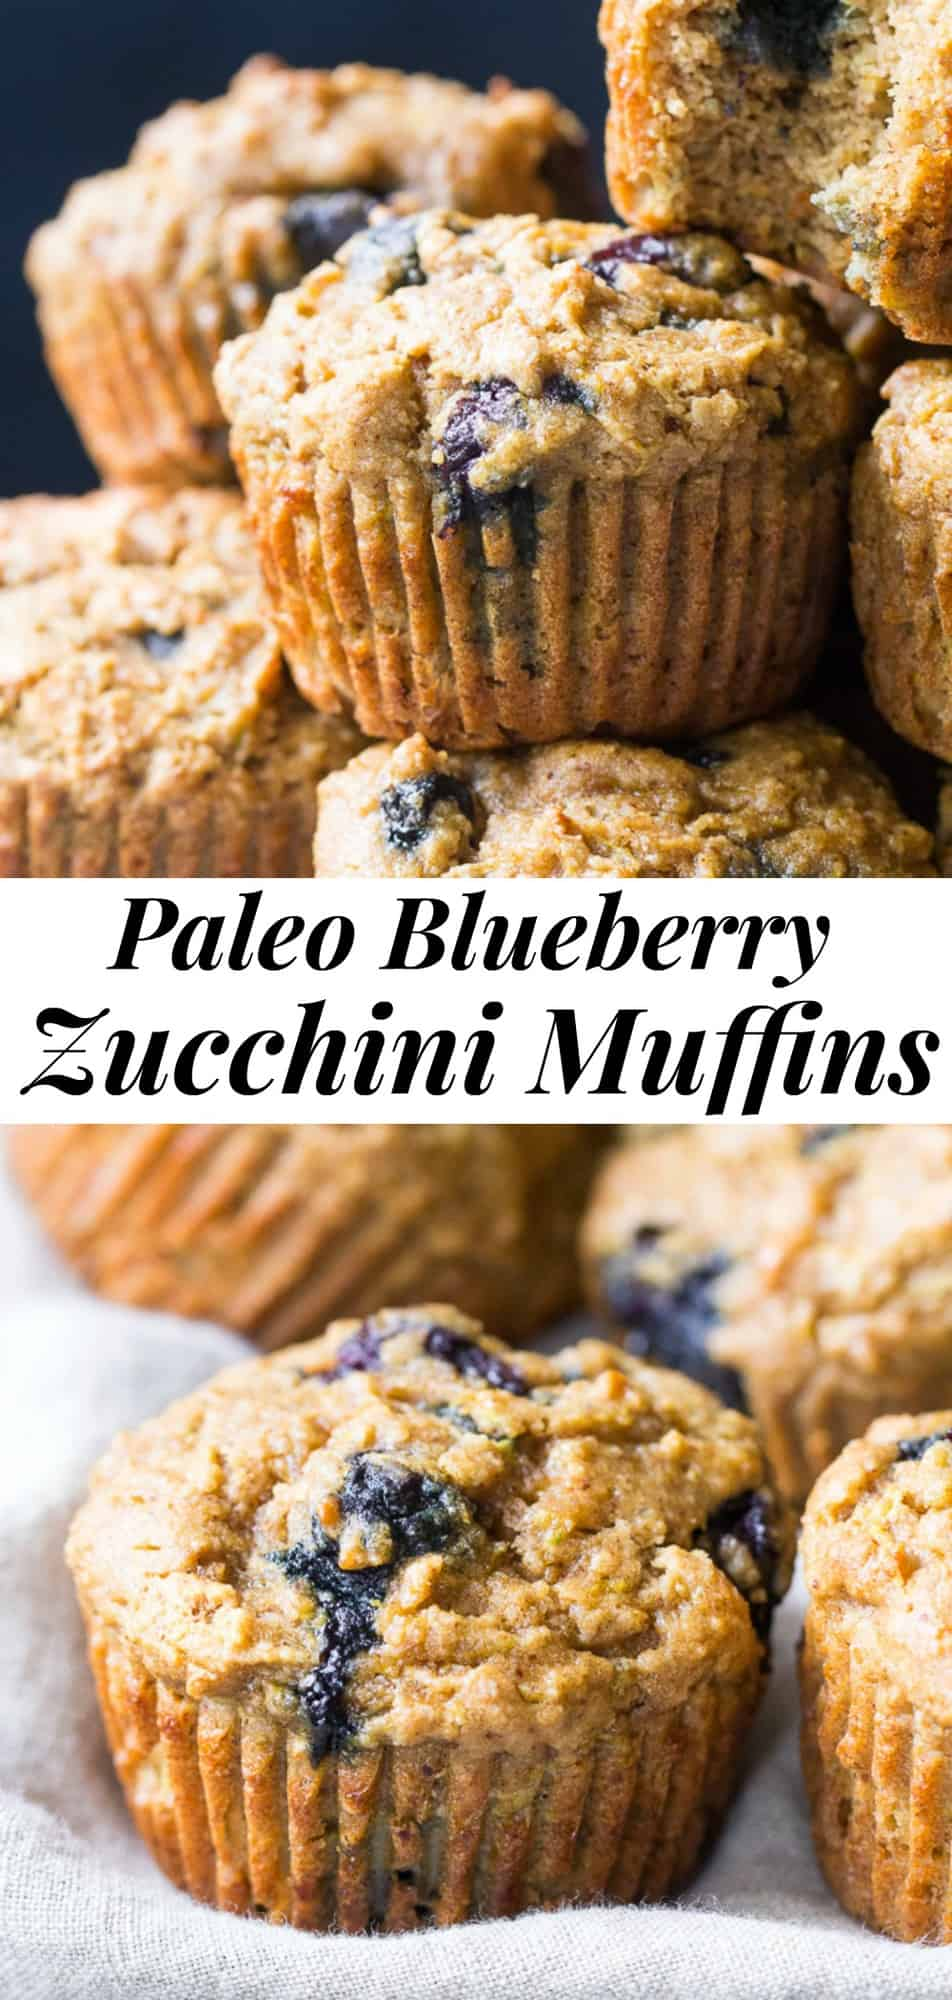 Tender, moist and hearty paleo blueberry zucchini muffins that everyone will love! The right combination of grain free flours gives them classic texture and unrefined coconut sugar adds the right amount of sweetness. Gluten free, dairy free, kid approved and great for healthy breakfasts, brunches and snacks. #paleo #glutenfree #zucchini #muffins #healthy #cleaneating